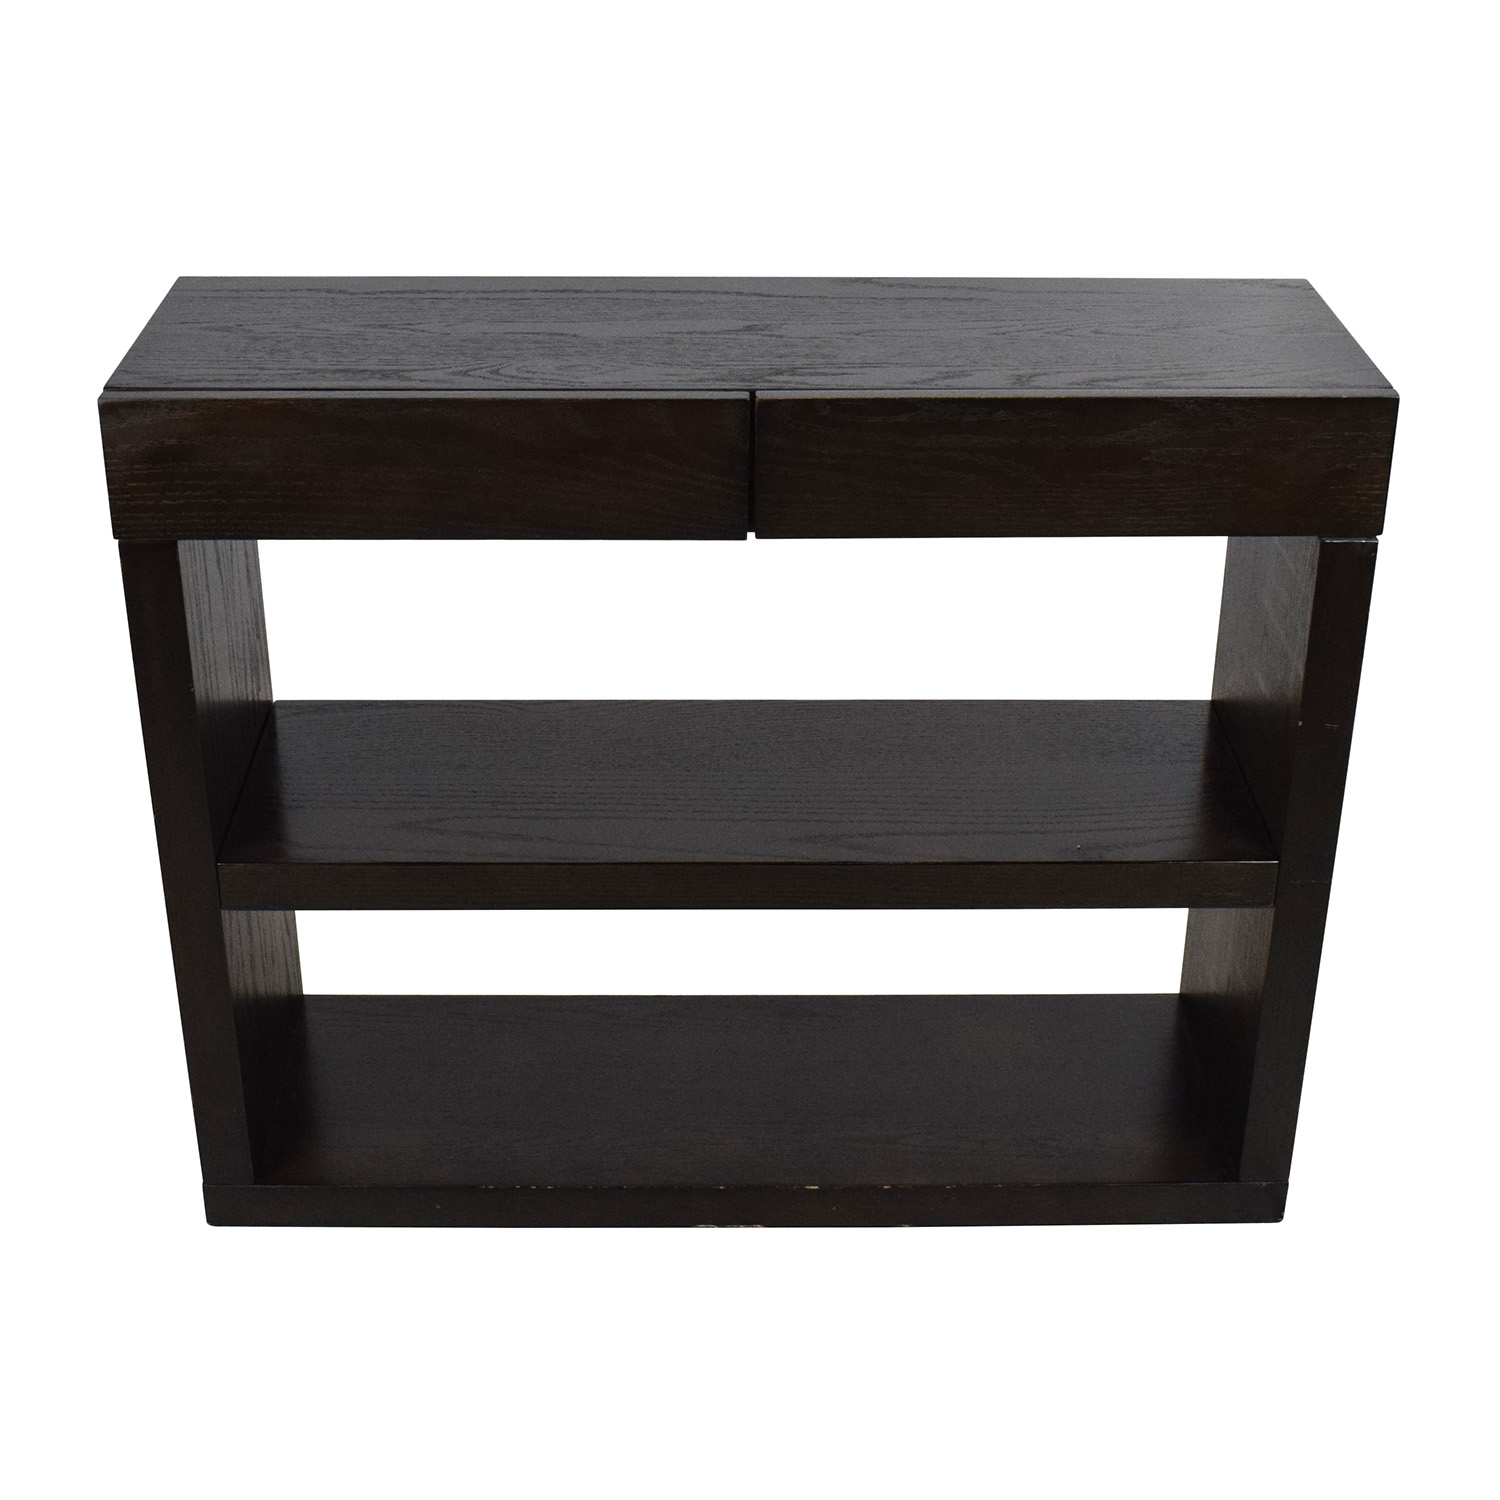 West Elm West Elm Dark Wooden Console on sale